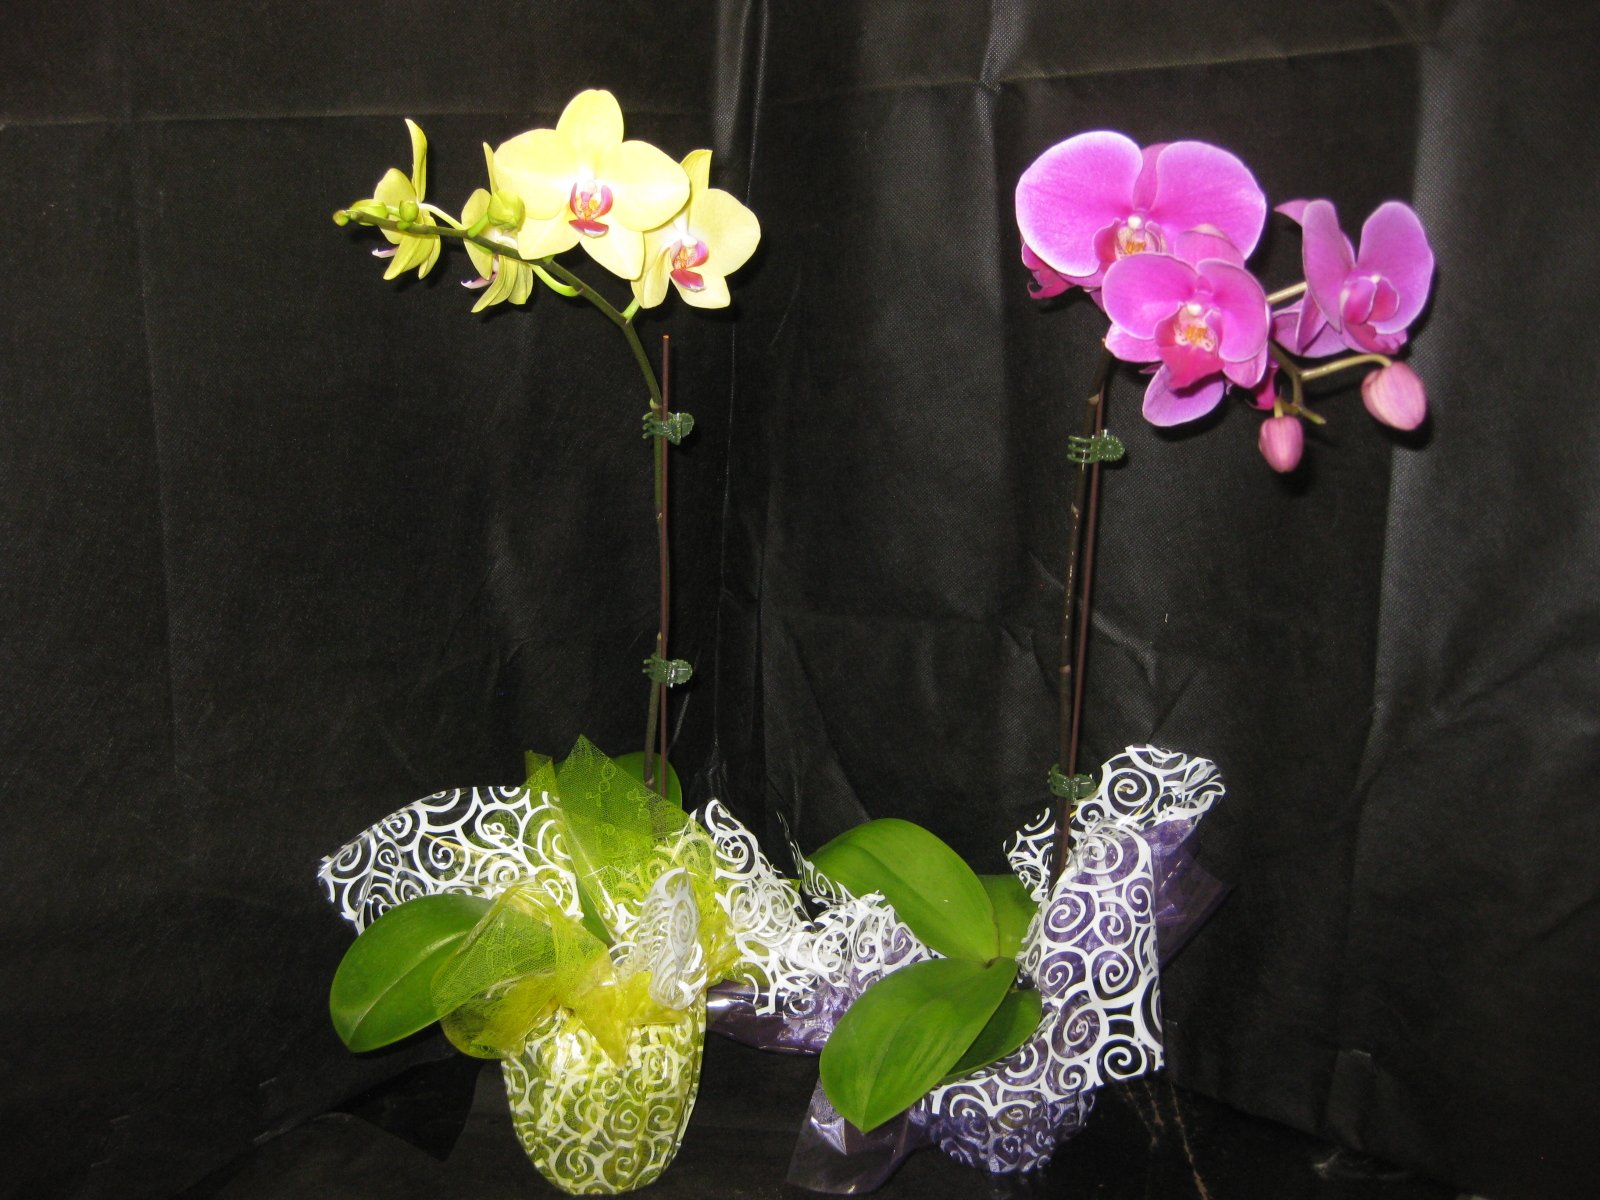 2 Blooming /Budded Flowering Phalaenopsis Orchid PLANTS-ADDS ELEGANT & STYLISH DECOR- Perfect Mother's Day Gift!